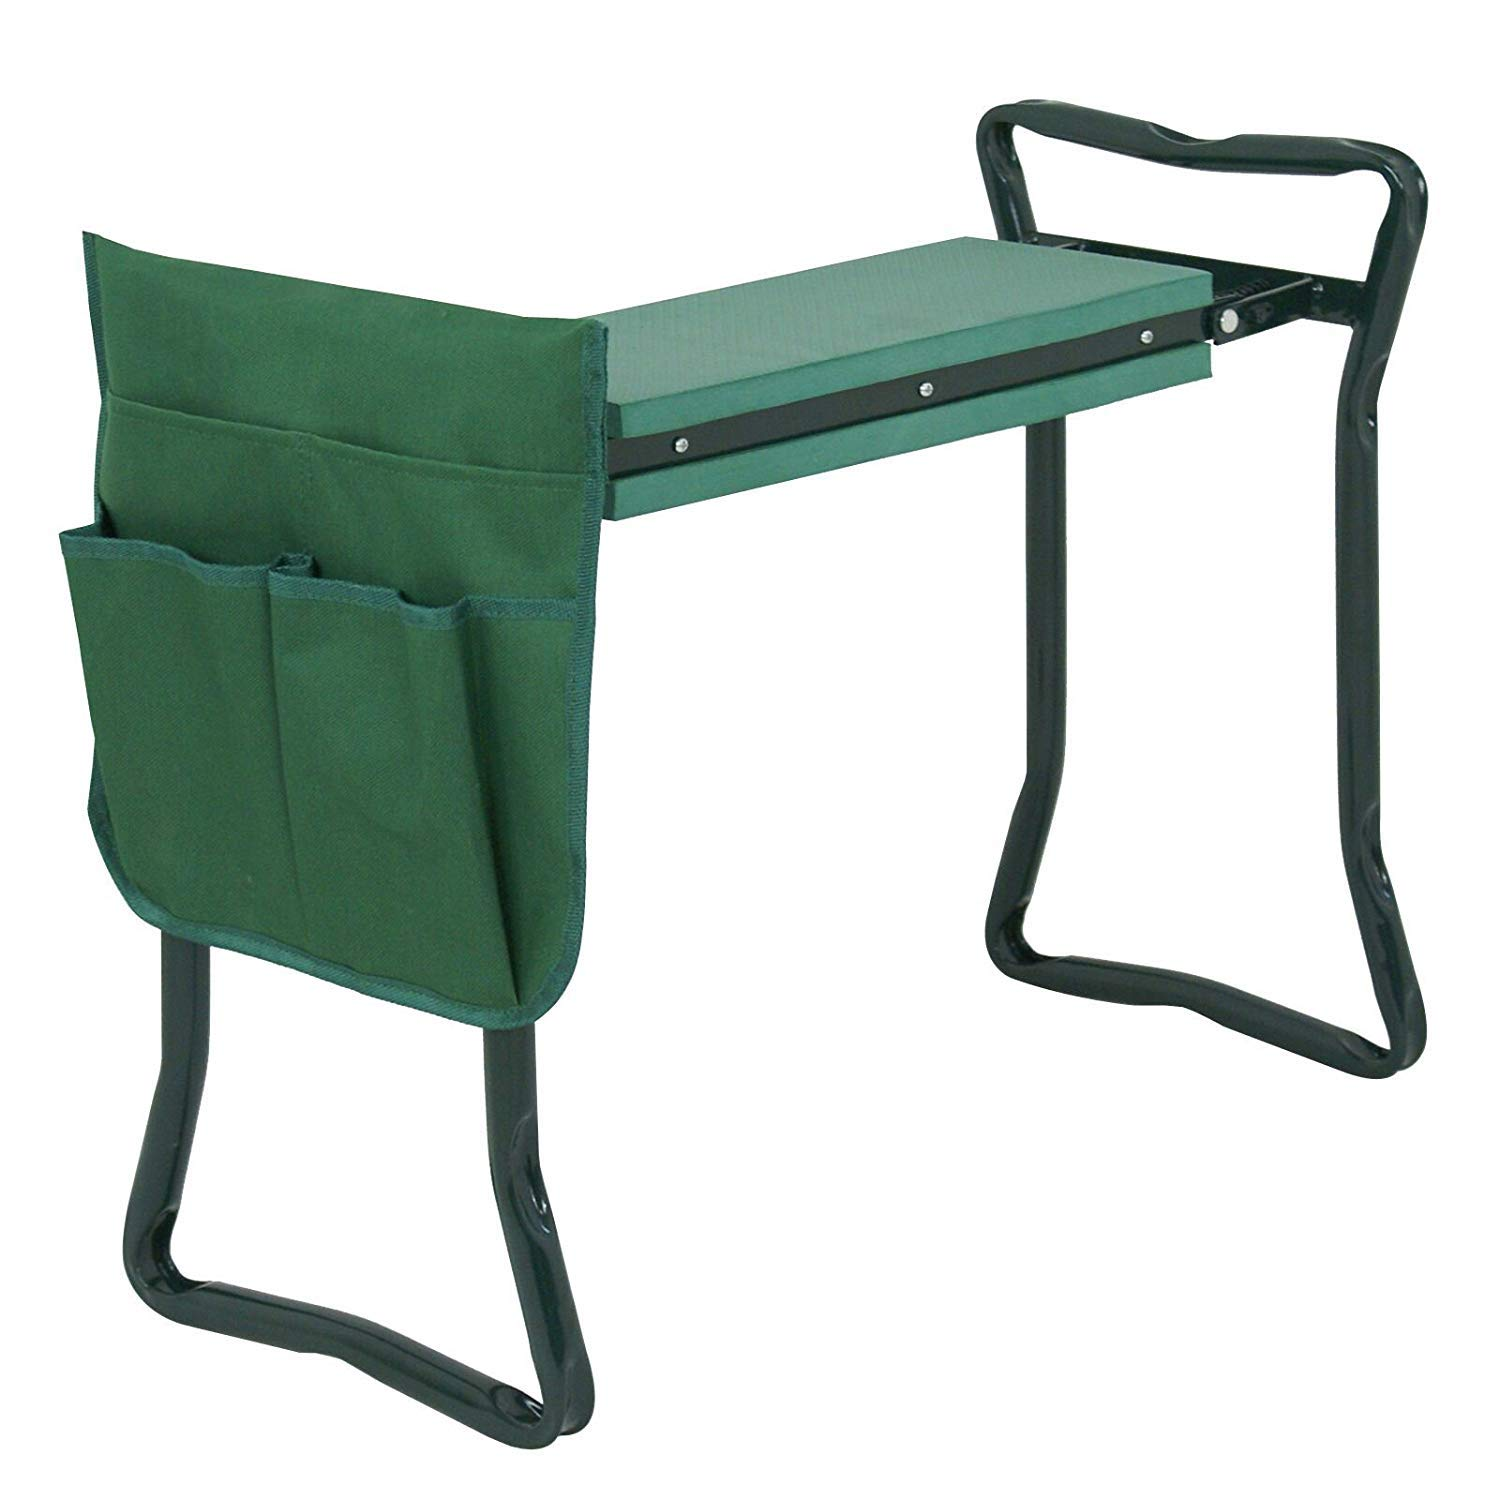 Oteymart Garden Kneeler Bench Kneeling Cushioned Steel Seat Portable Kneeling Pad Garden Stool Multi-Purpose Gardener Deep Seat with Tool Pouches